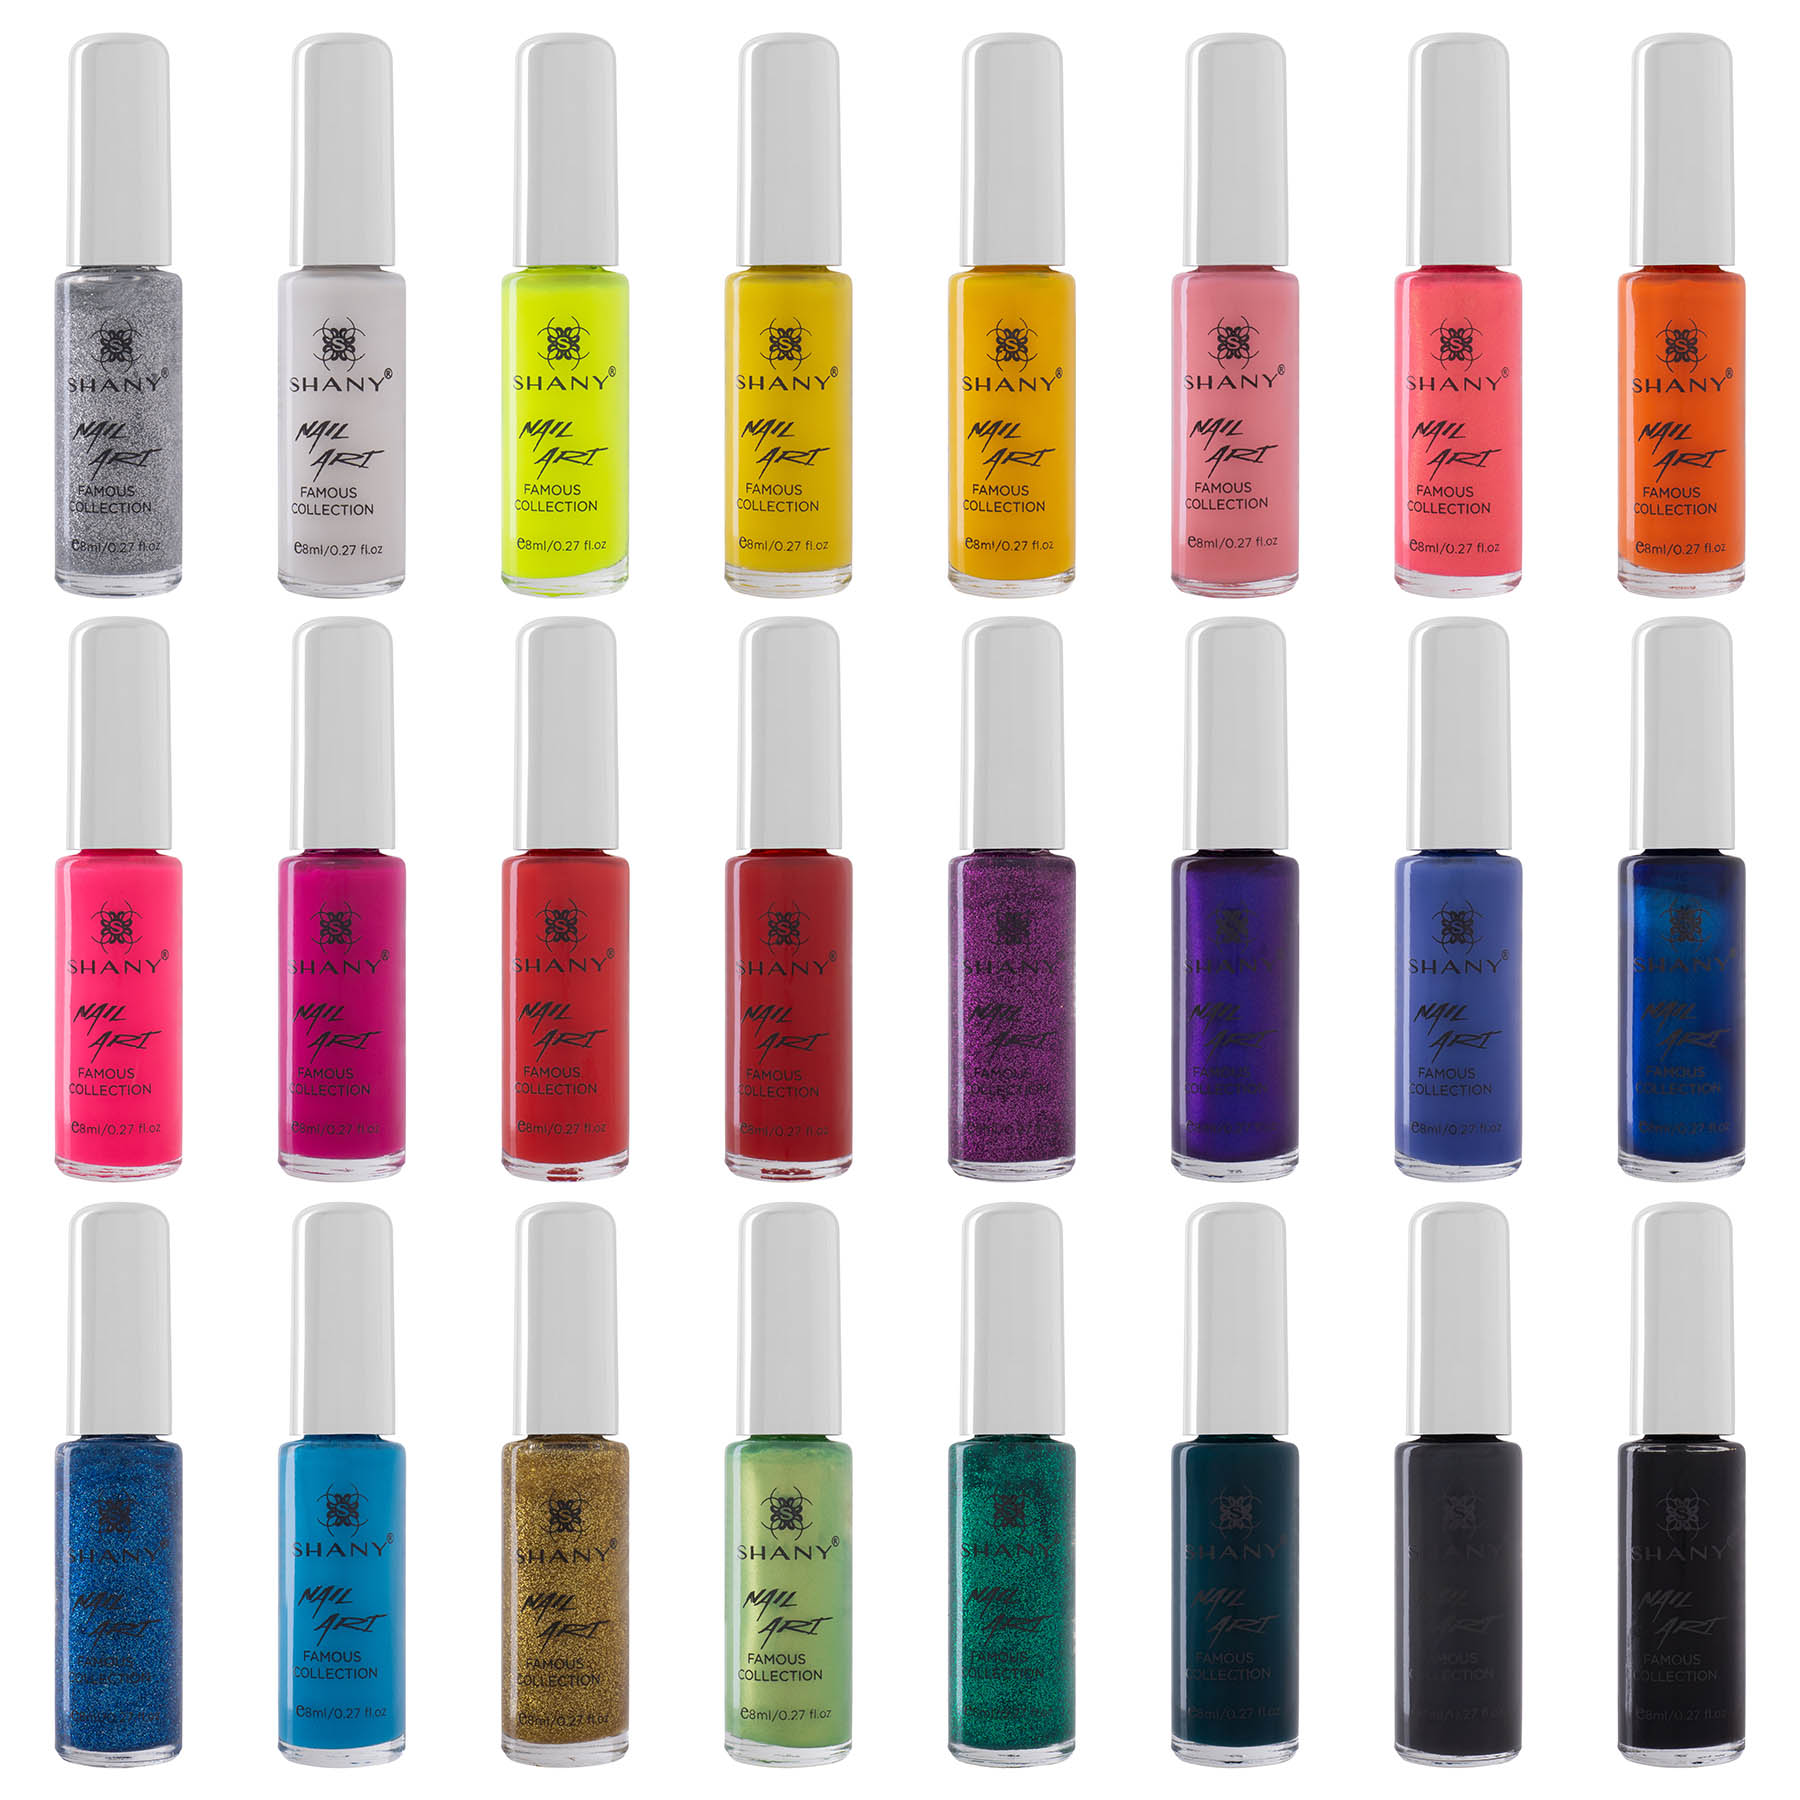 6634b32ad64a SHANY Nail Art Set (24 Famous Colors Nail Art Polish, Nail Art Decoration)